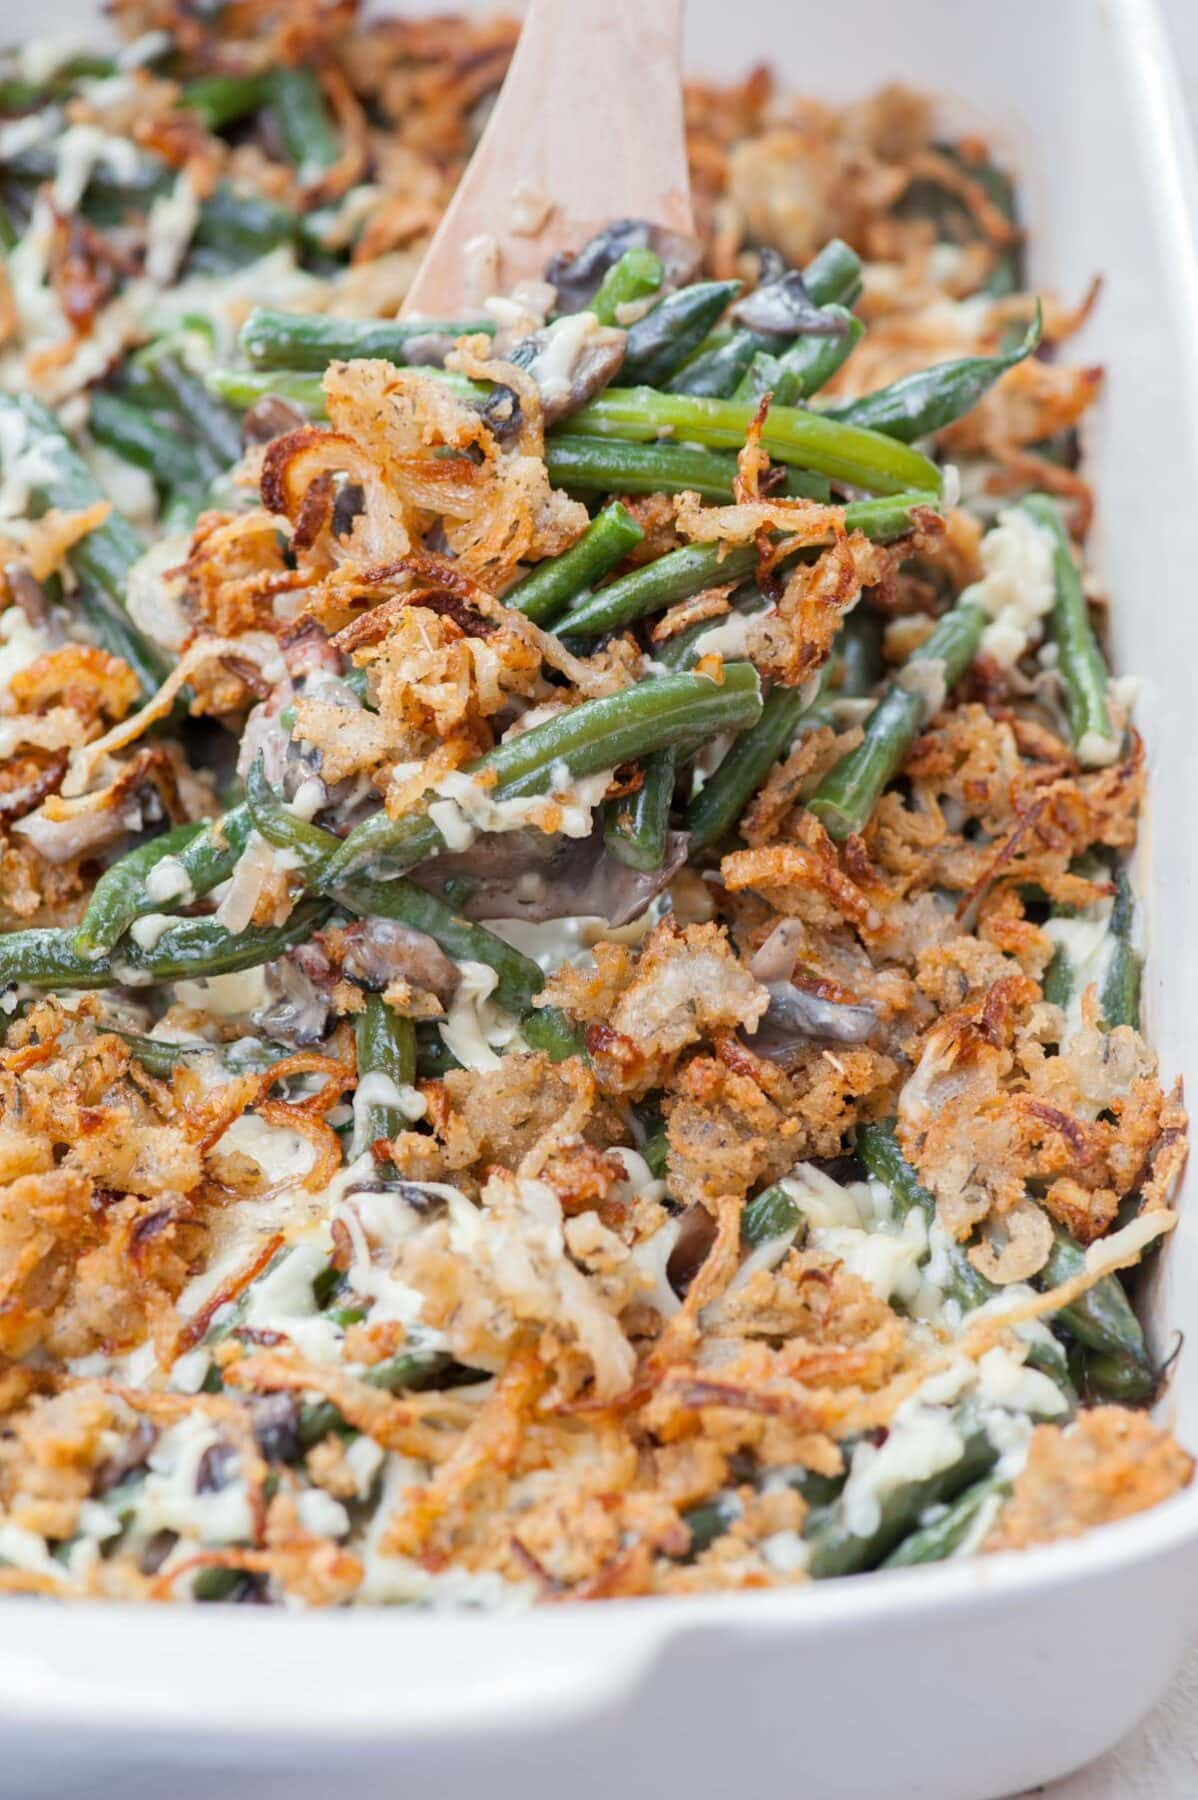 Green bean casserole in a white baking dish is being loaded on a wooden spatula.